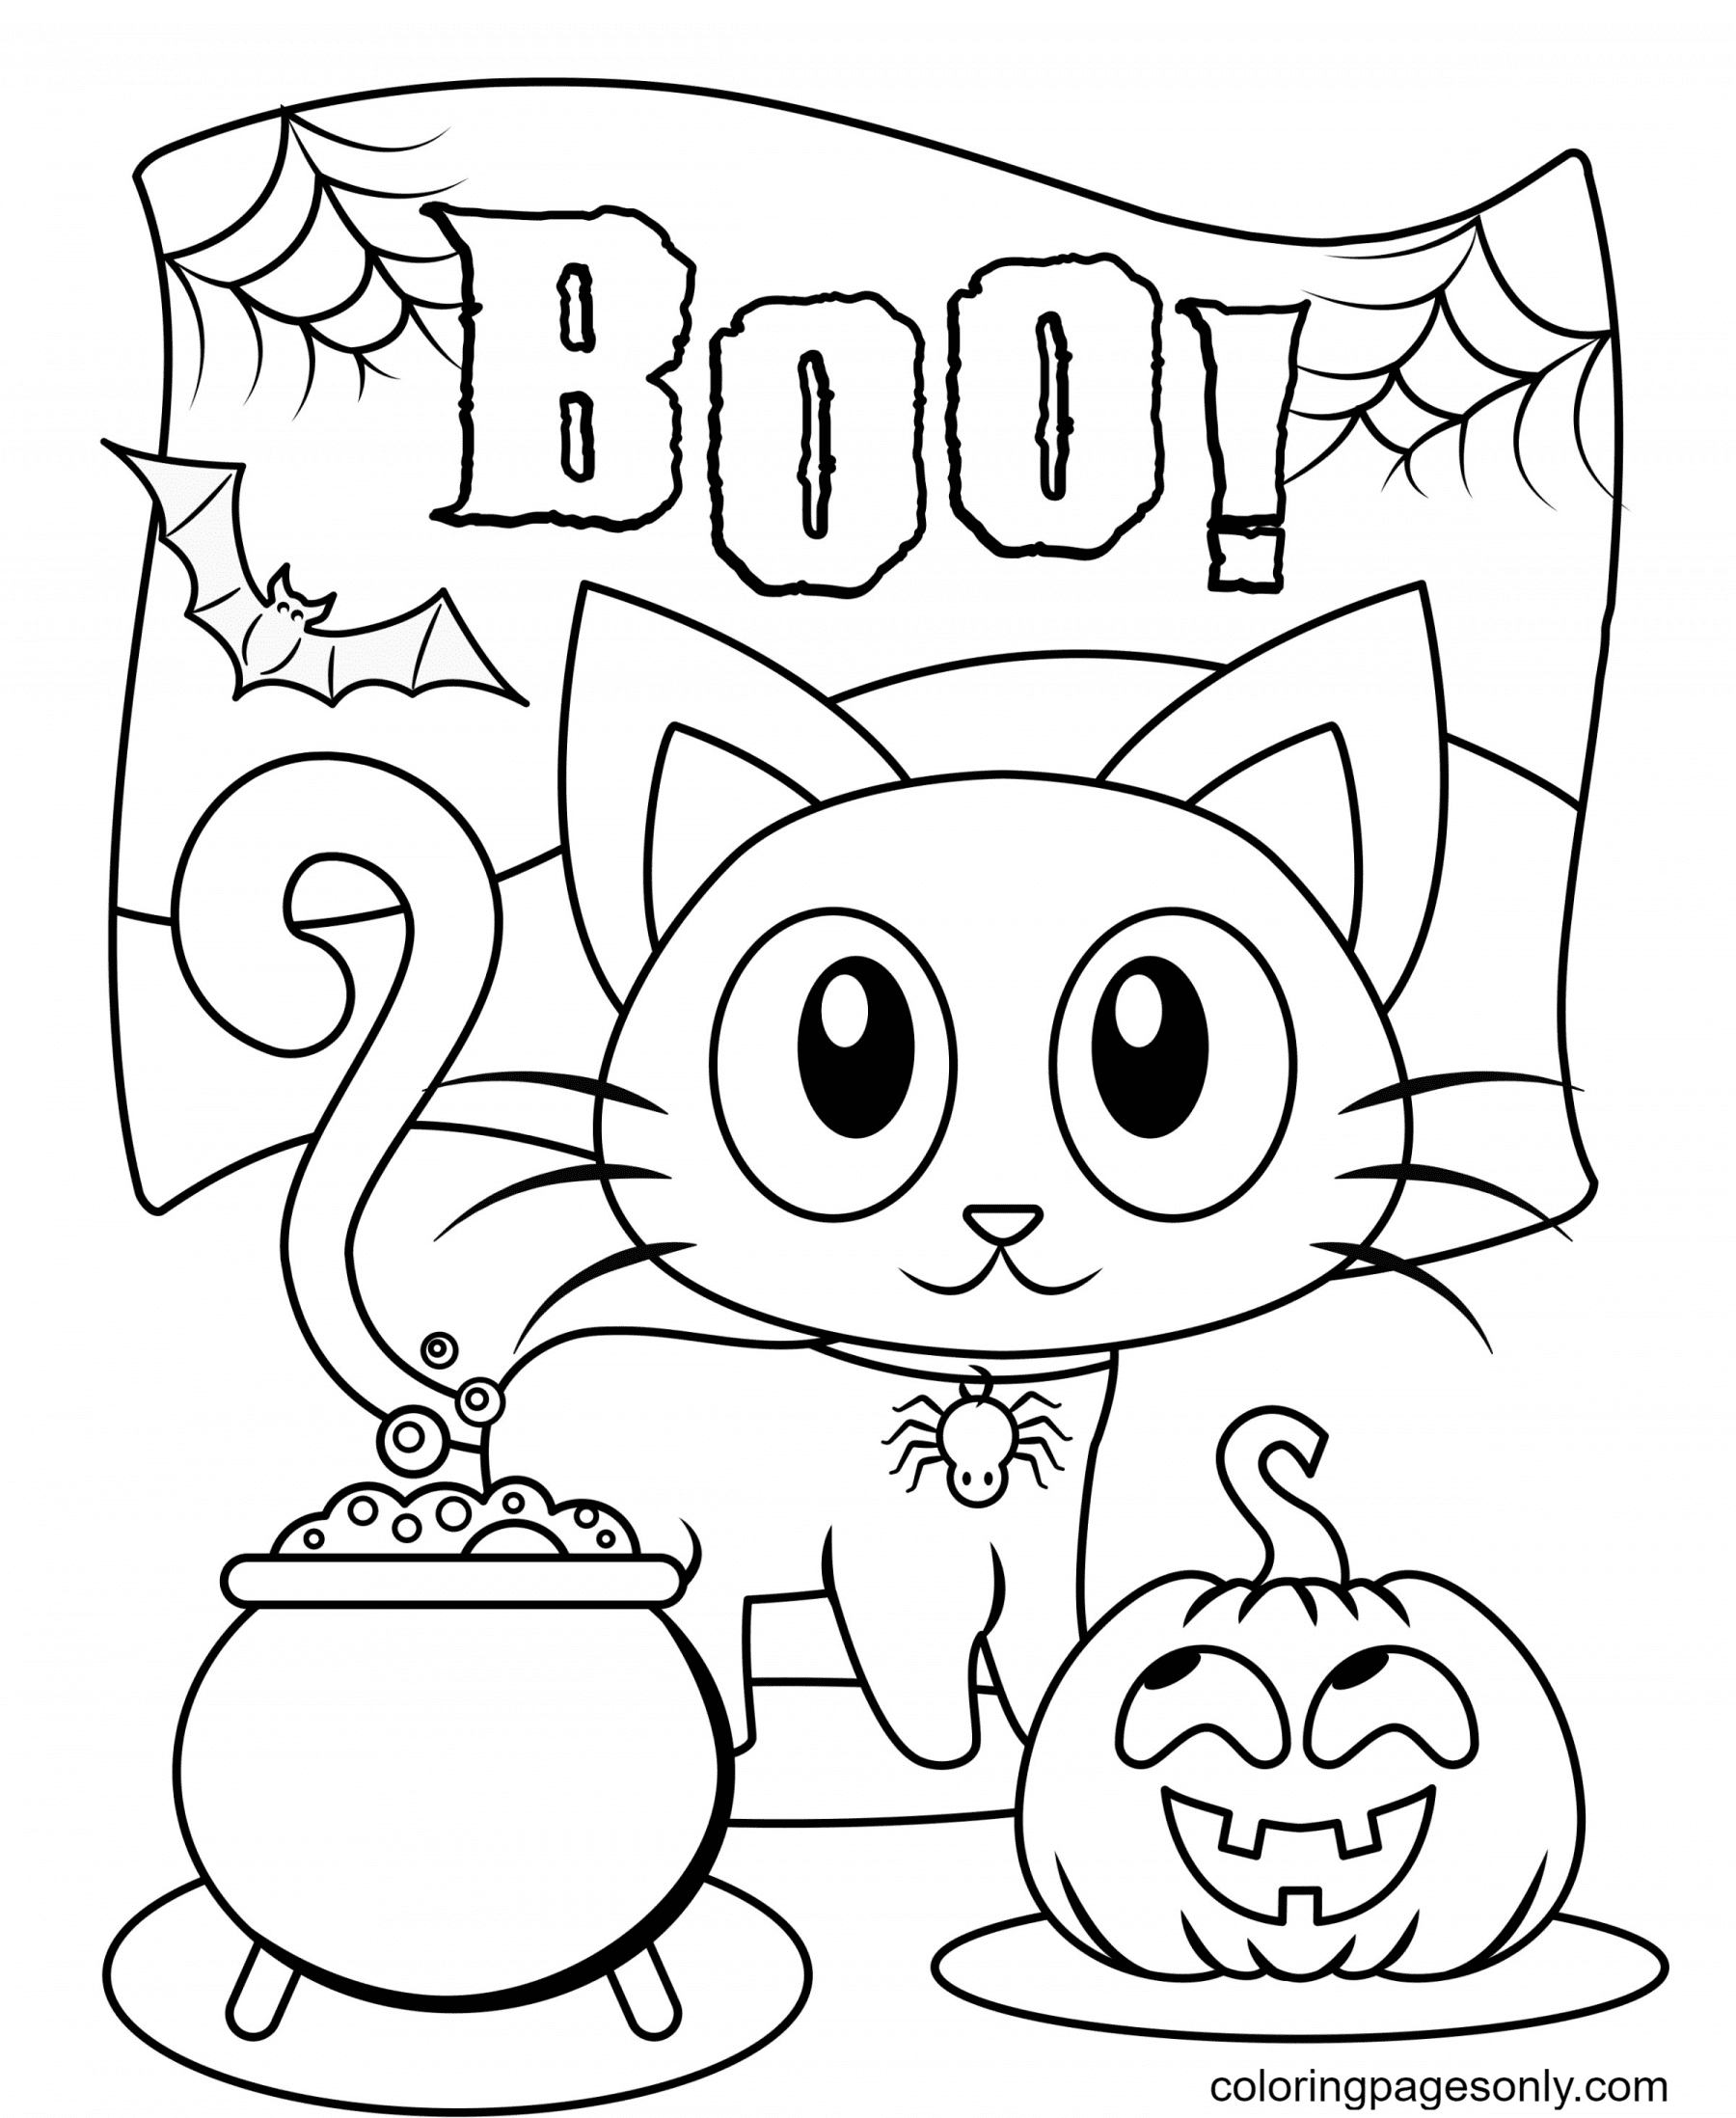 Printable Halloween Cat and Pumpkin Coloring Page